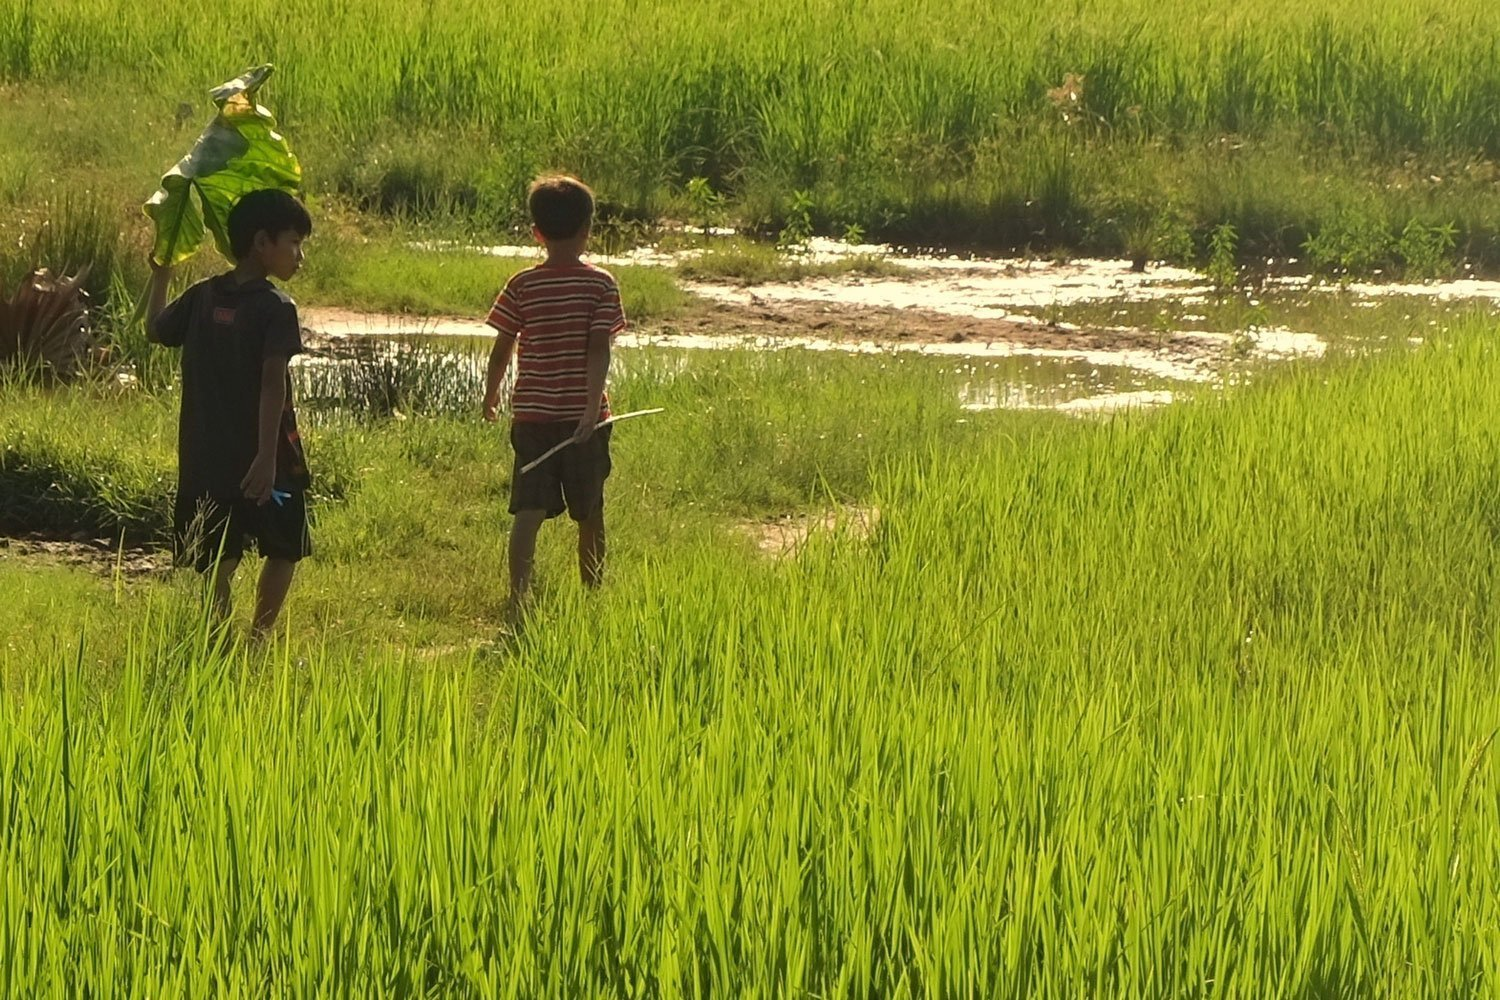 Two boys walk along a grassy marsh in Cambodia